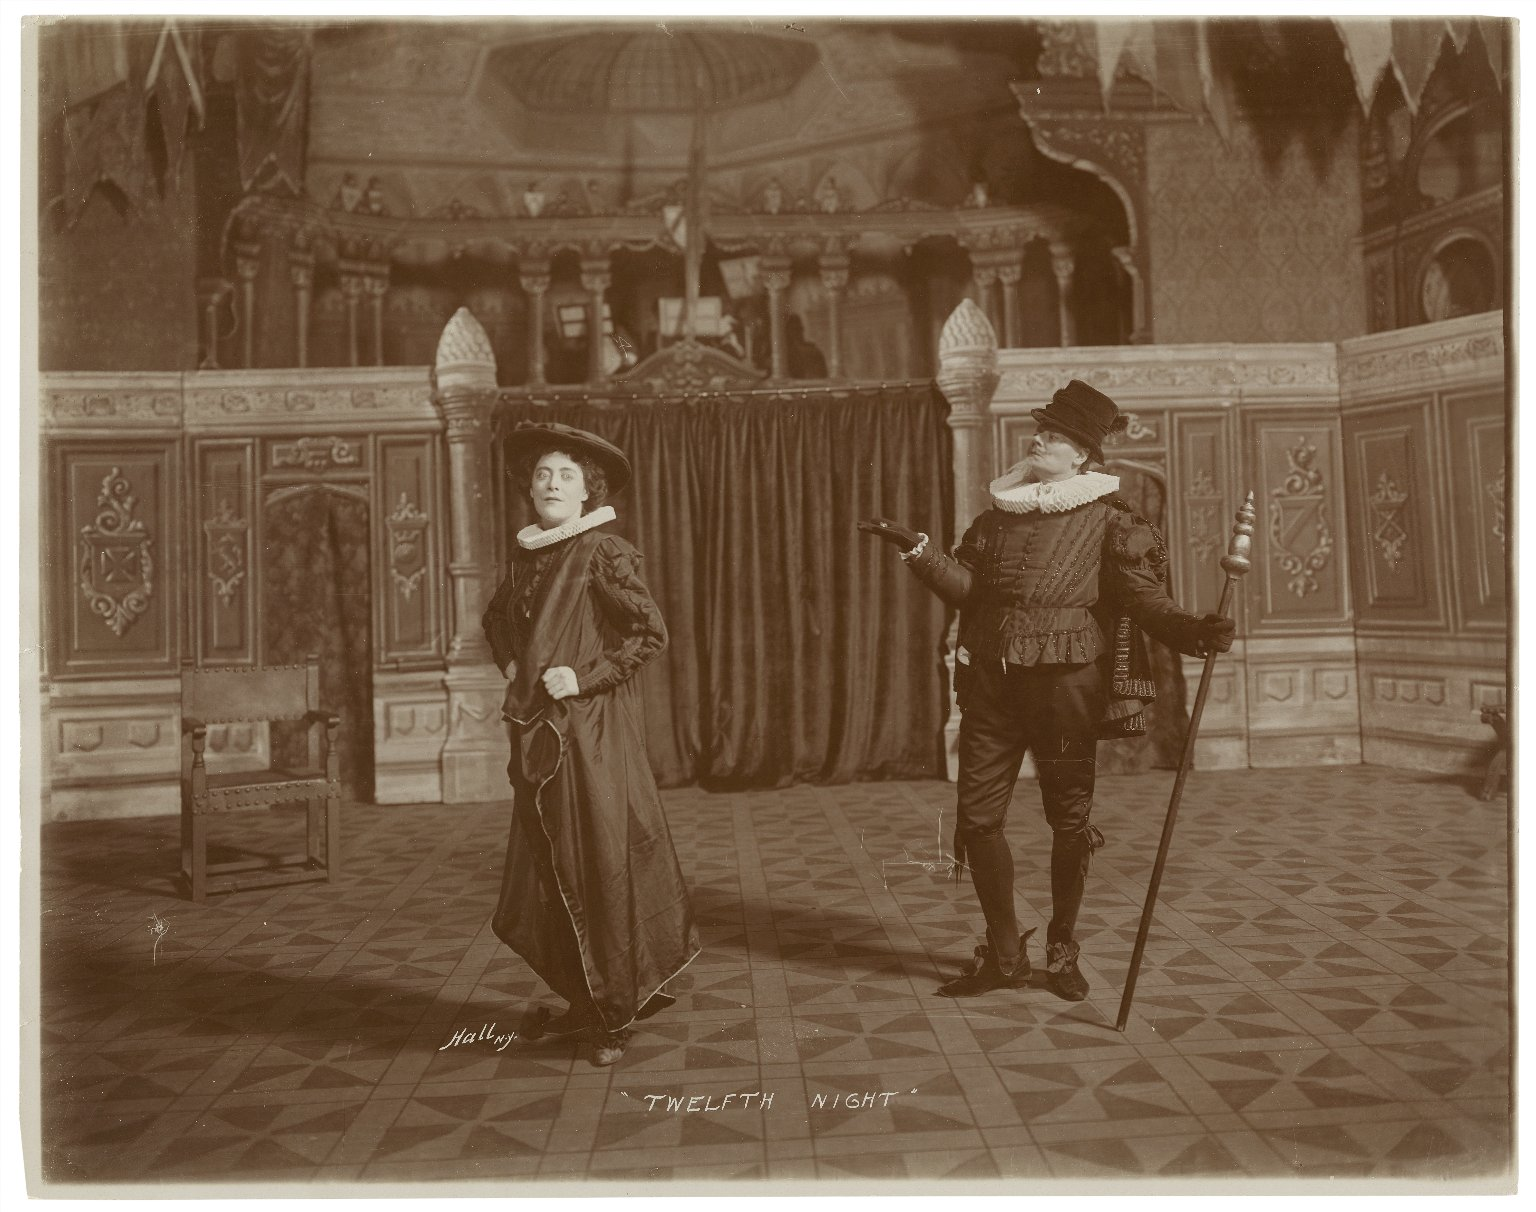 [9 photographs of a production of] Twelfth night [directed by Ben Greet, Knickerbocker Theatre, New York, February 1904] [graphic] / Hall.